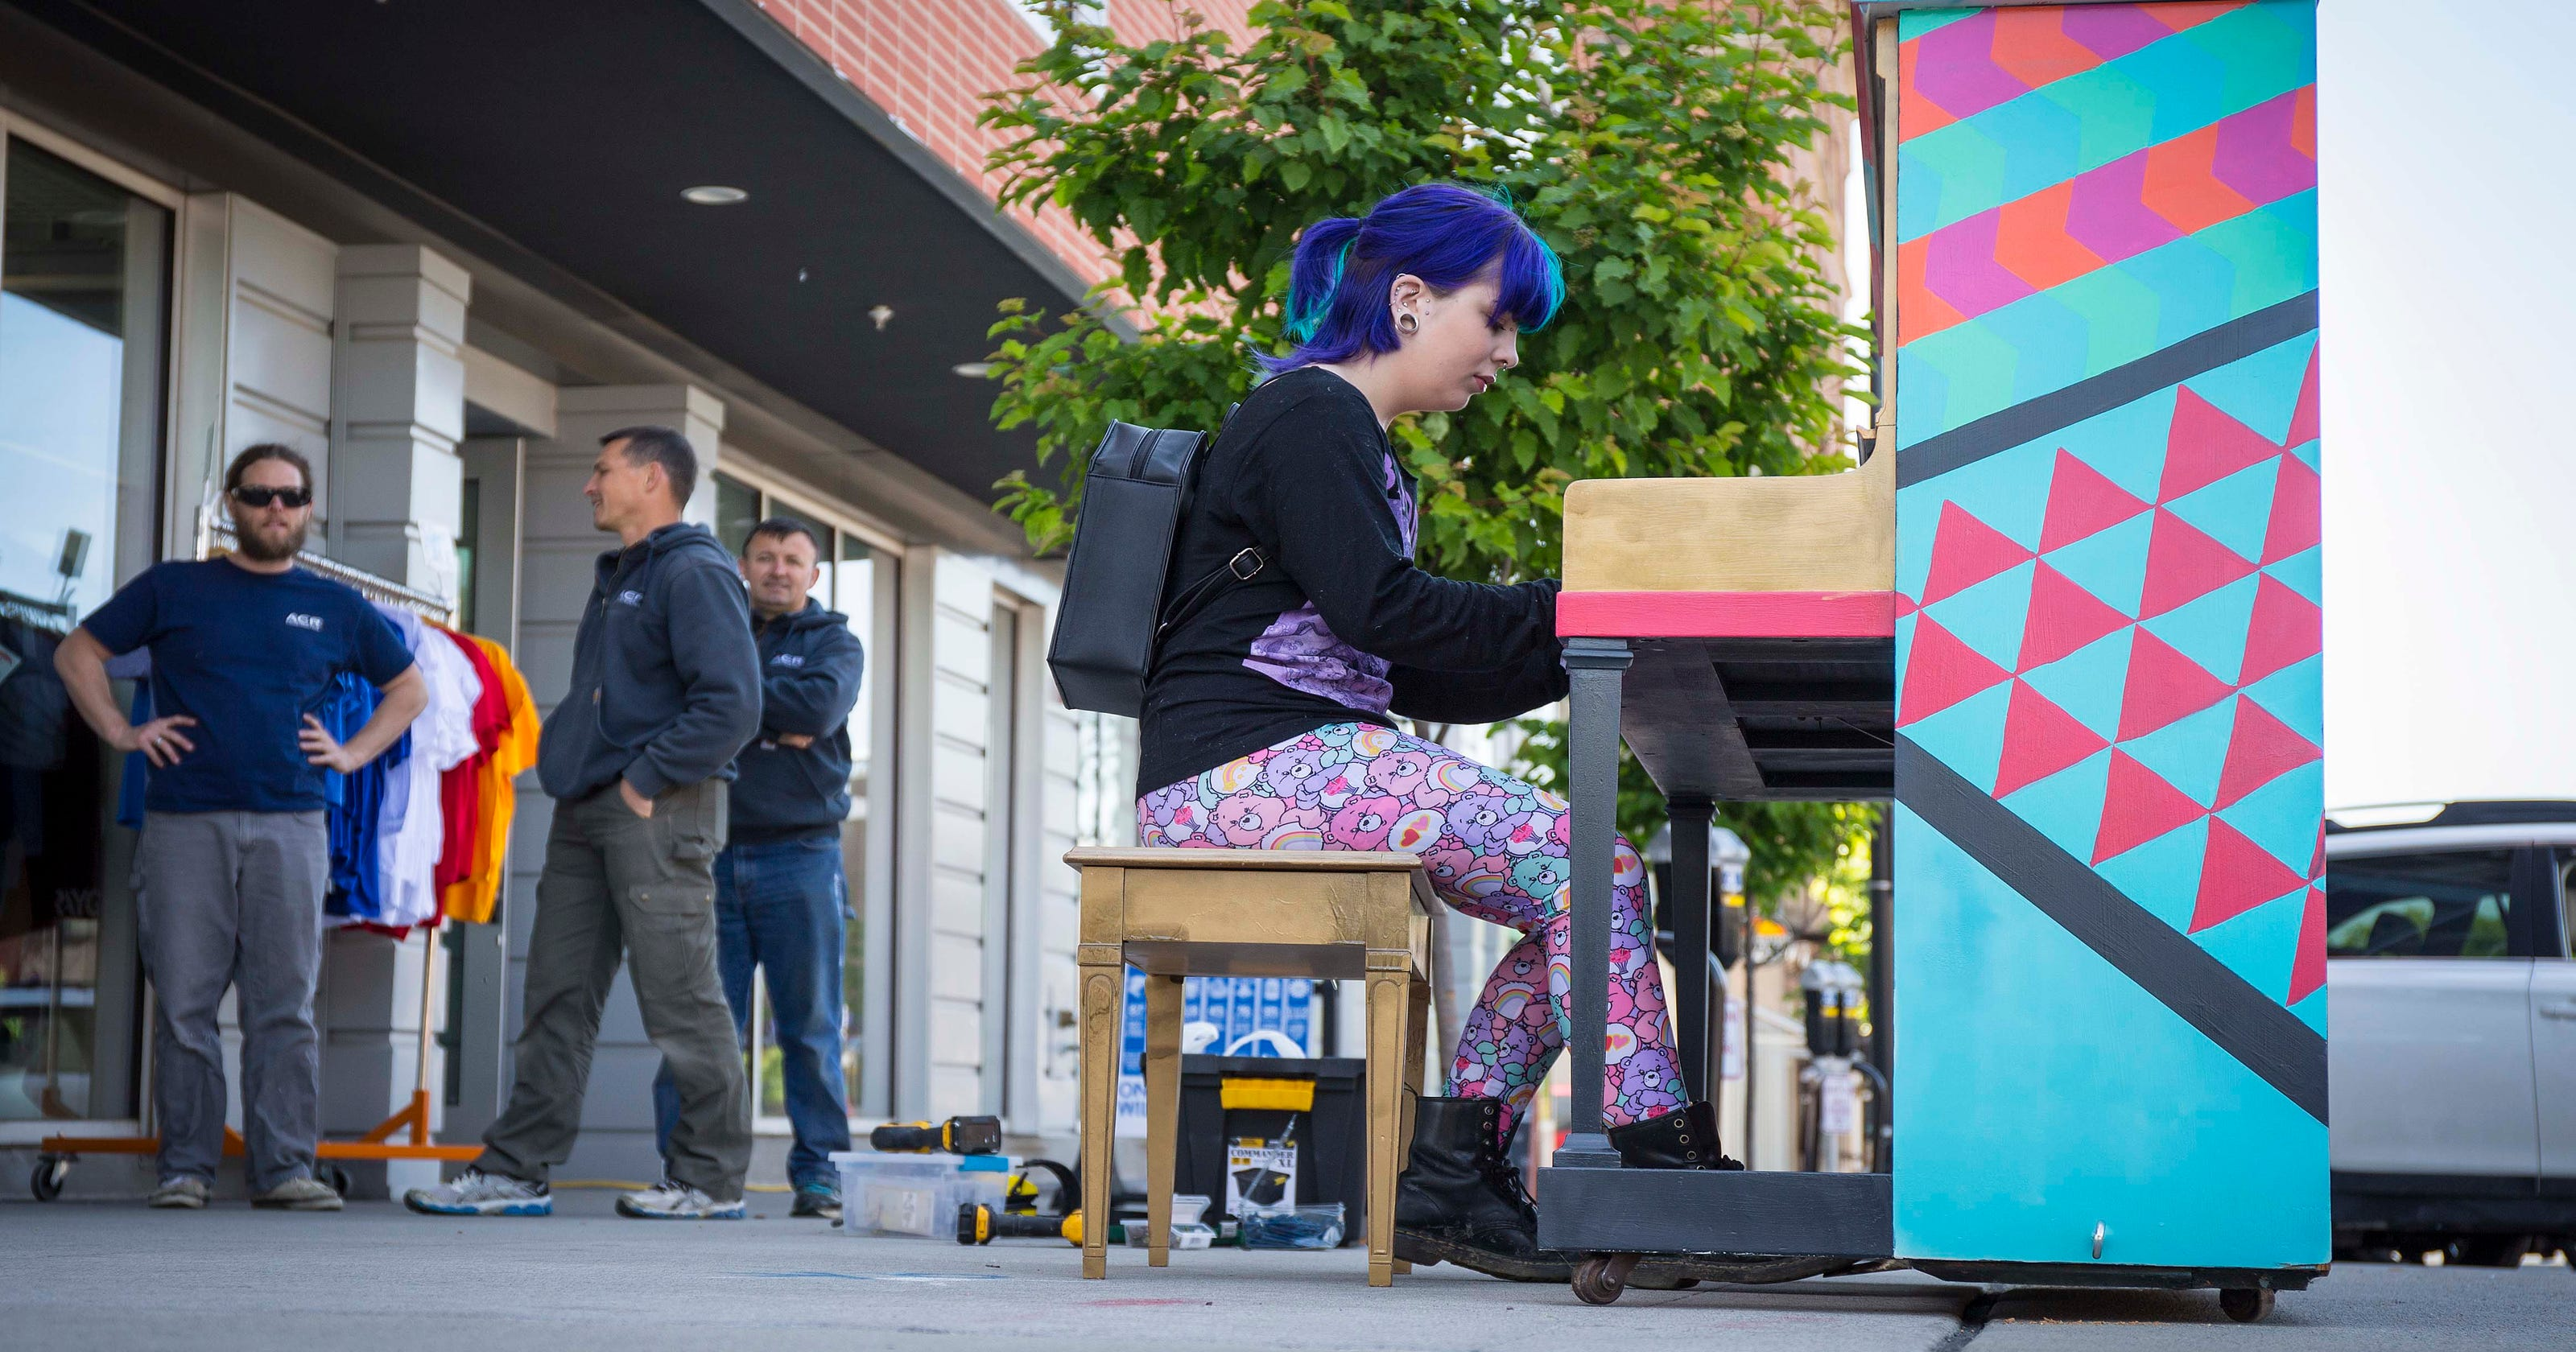 Play a tune on public pianos